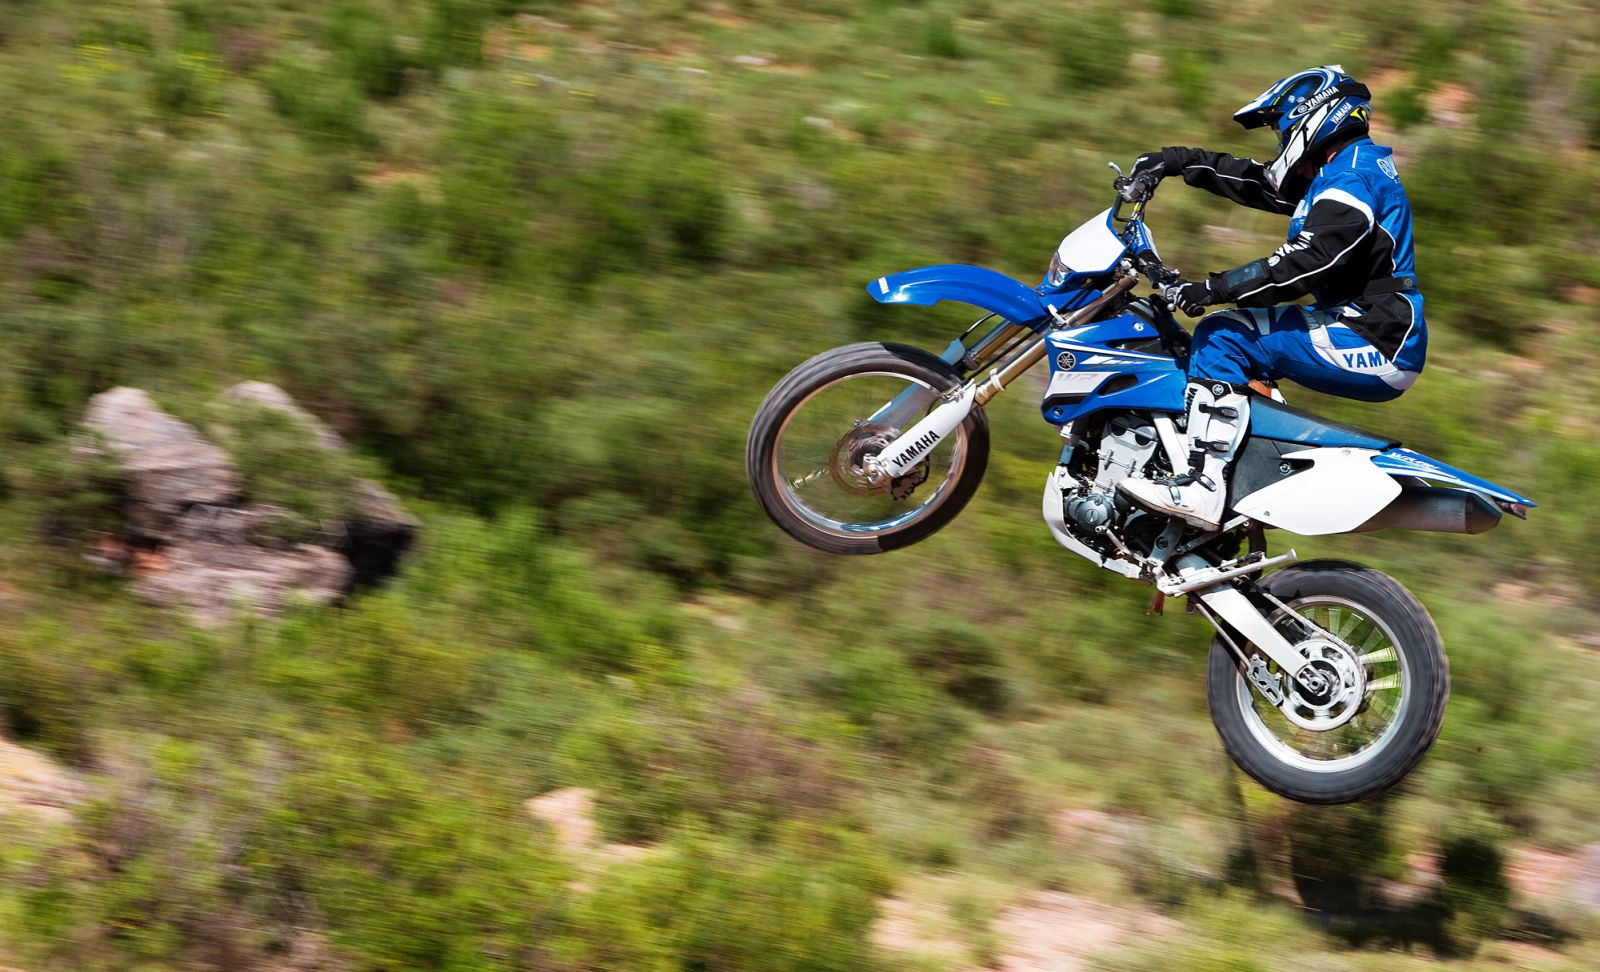 wallpapers de motos